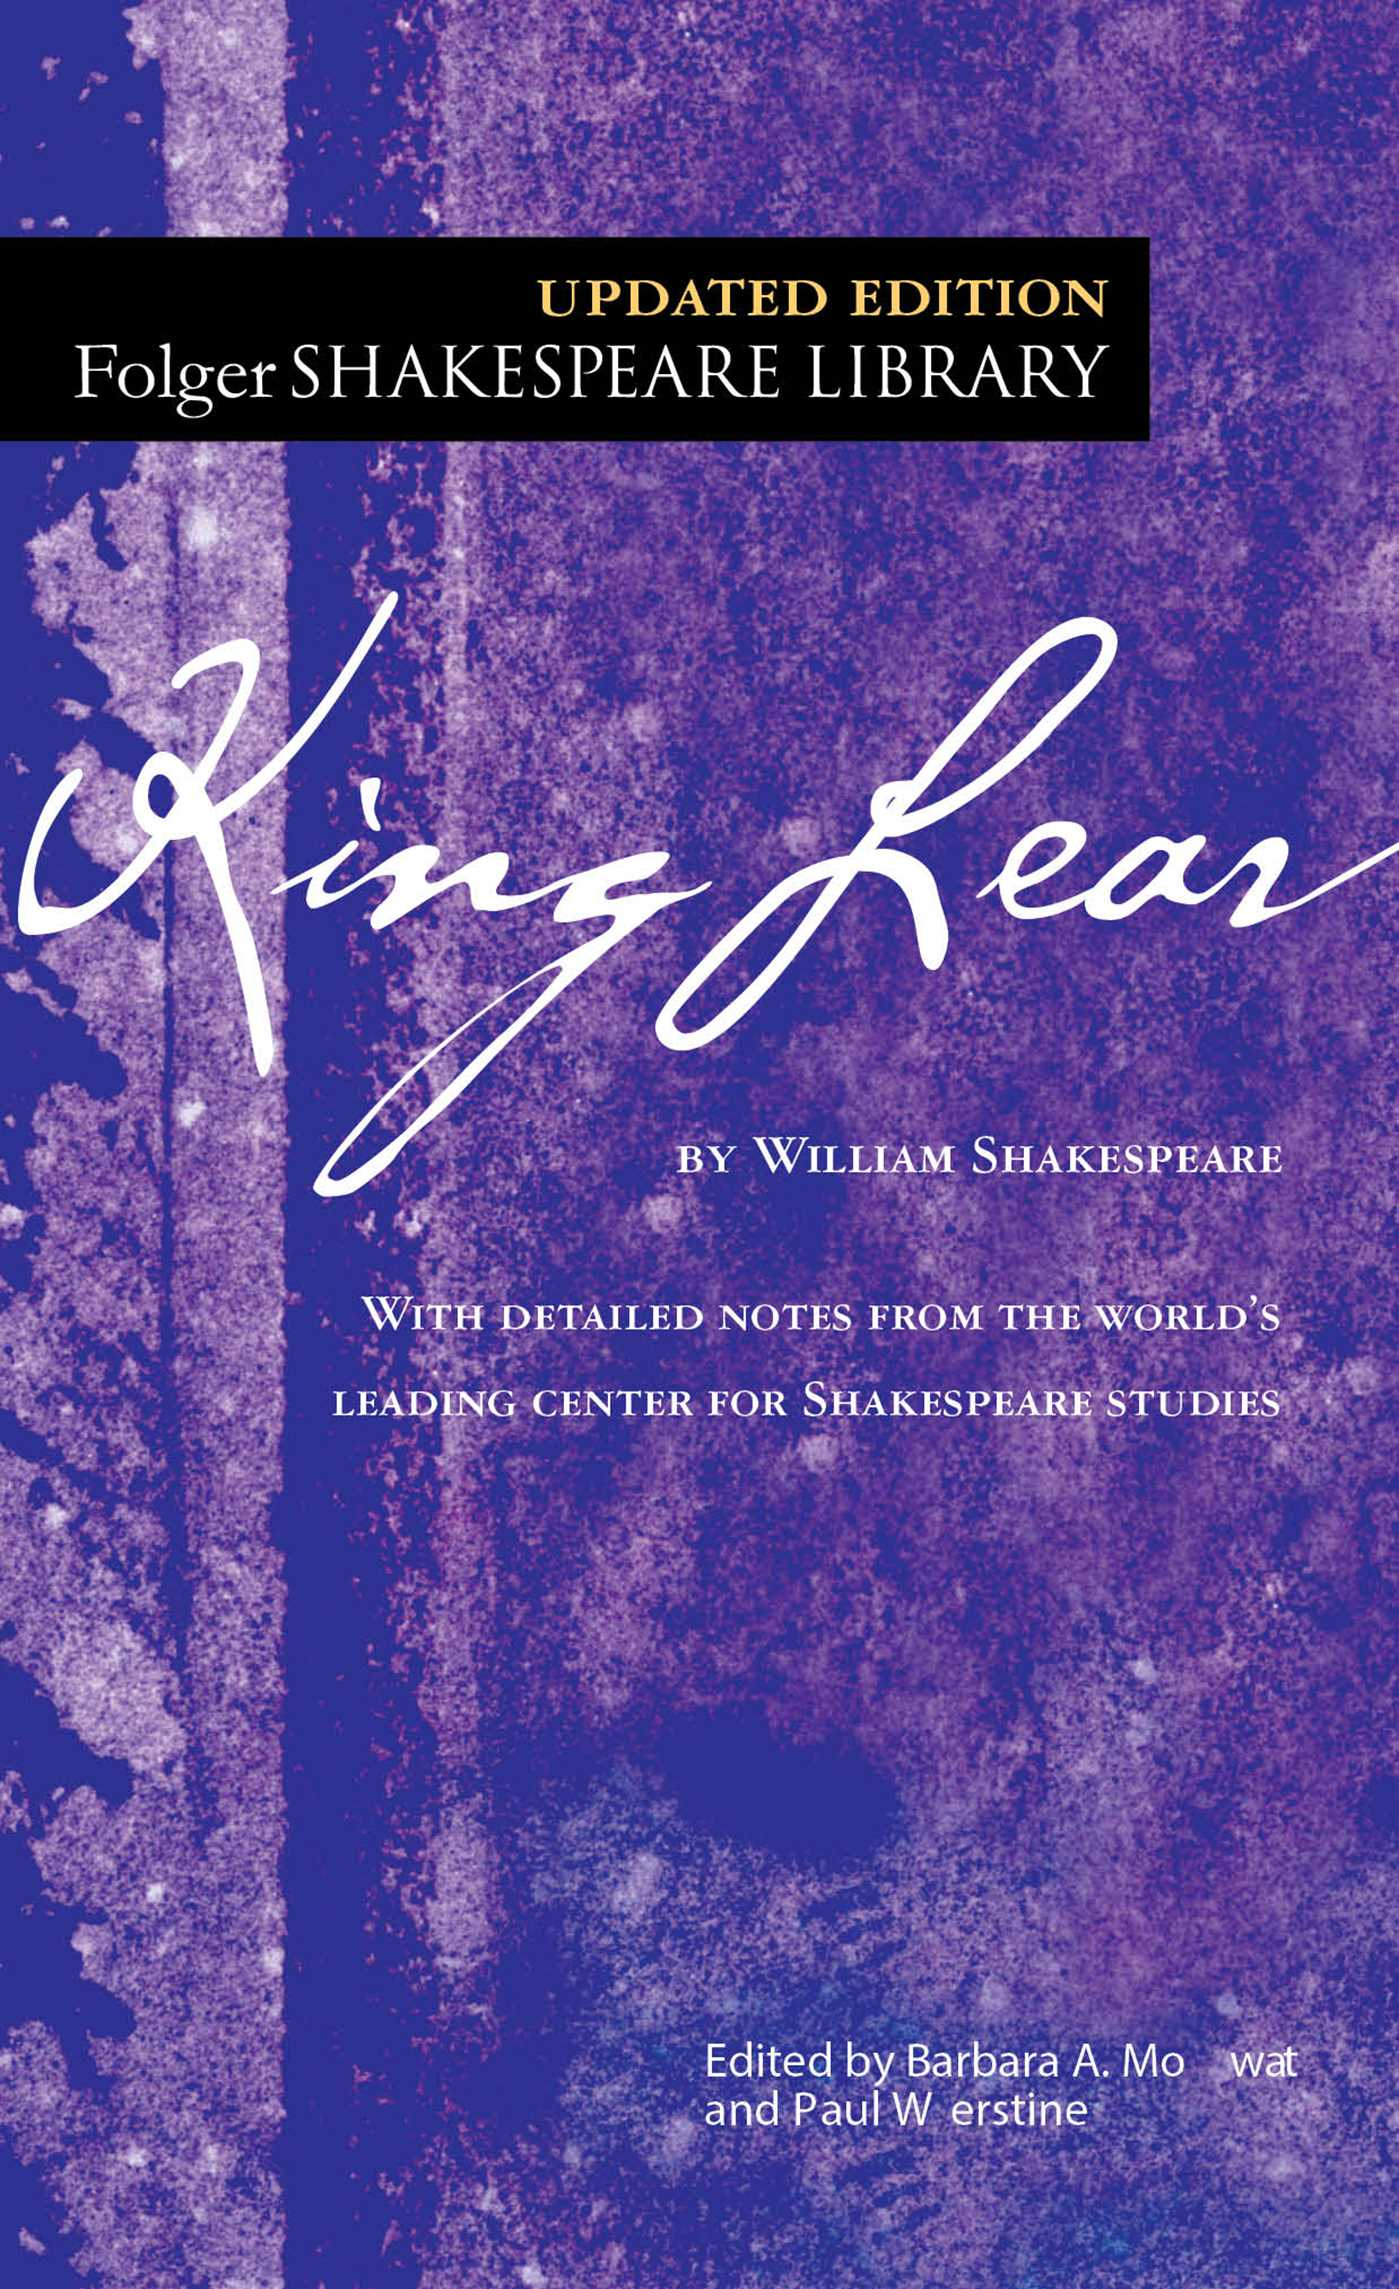 suffering in king lear Remarks on king lear king lear is usually considered shakespeare's second greatest tragedy—just behind hamlet it is an extraordinarily moving play and it speaks.